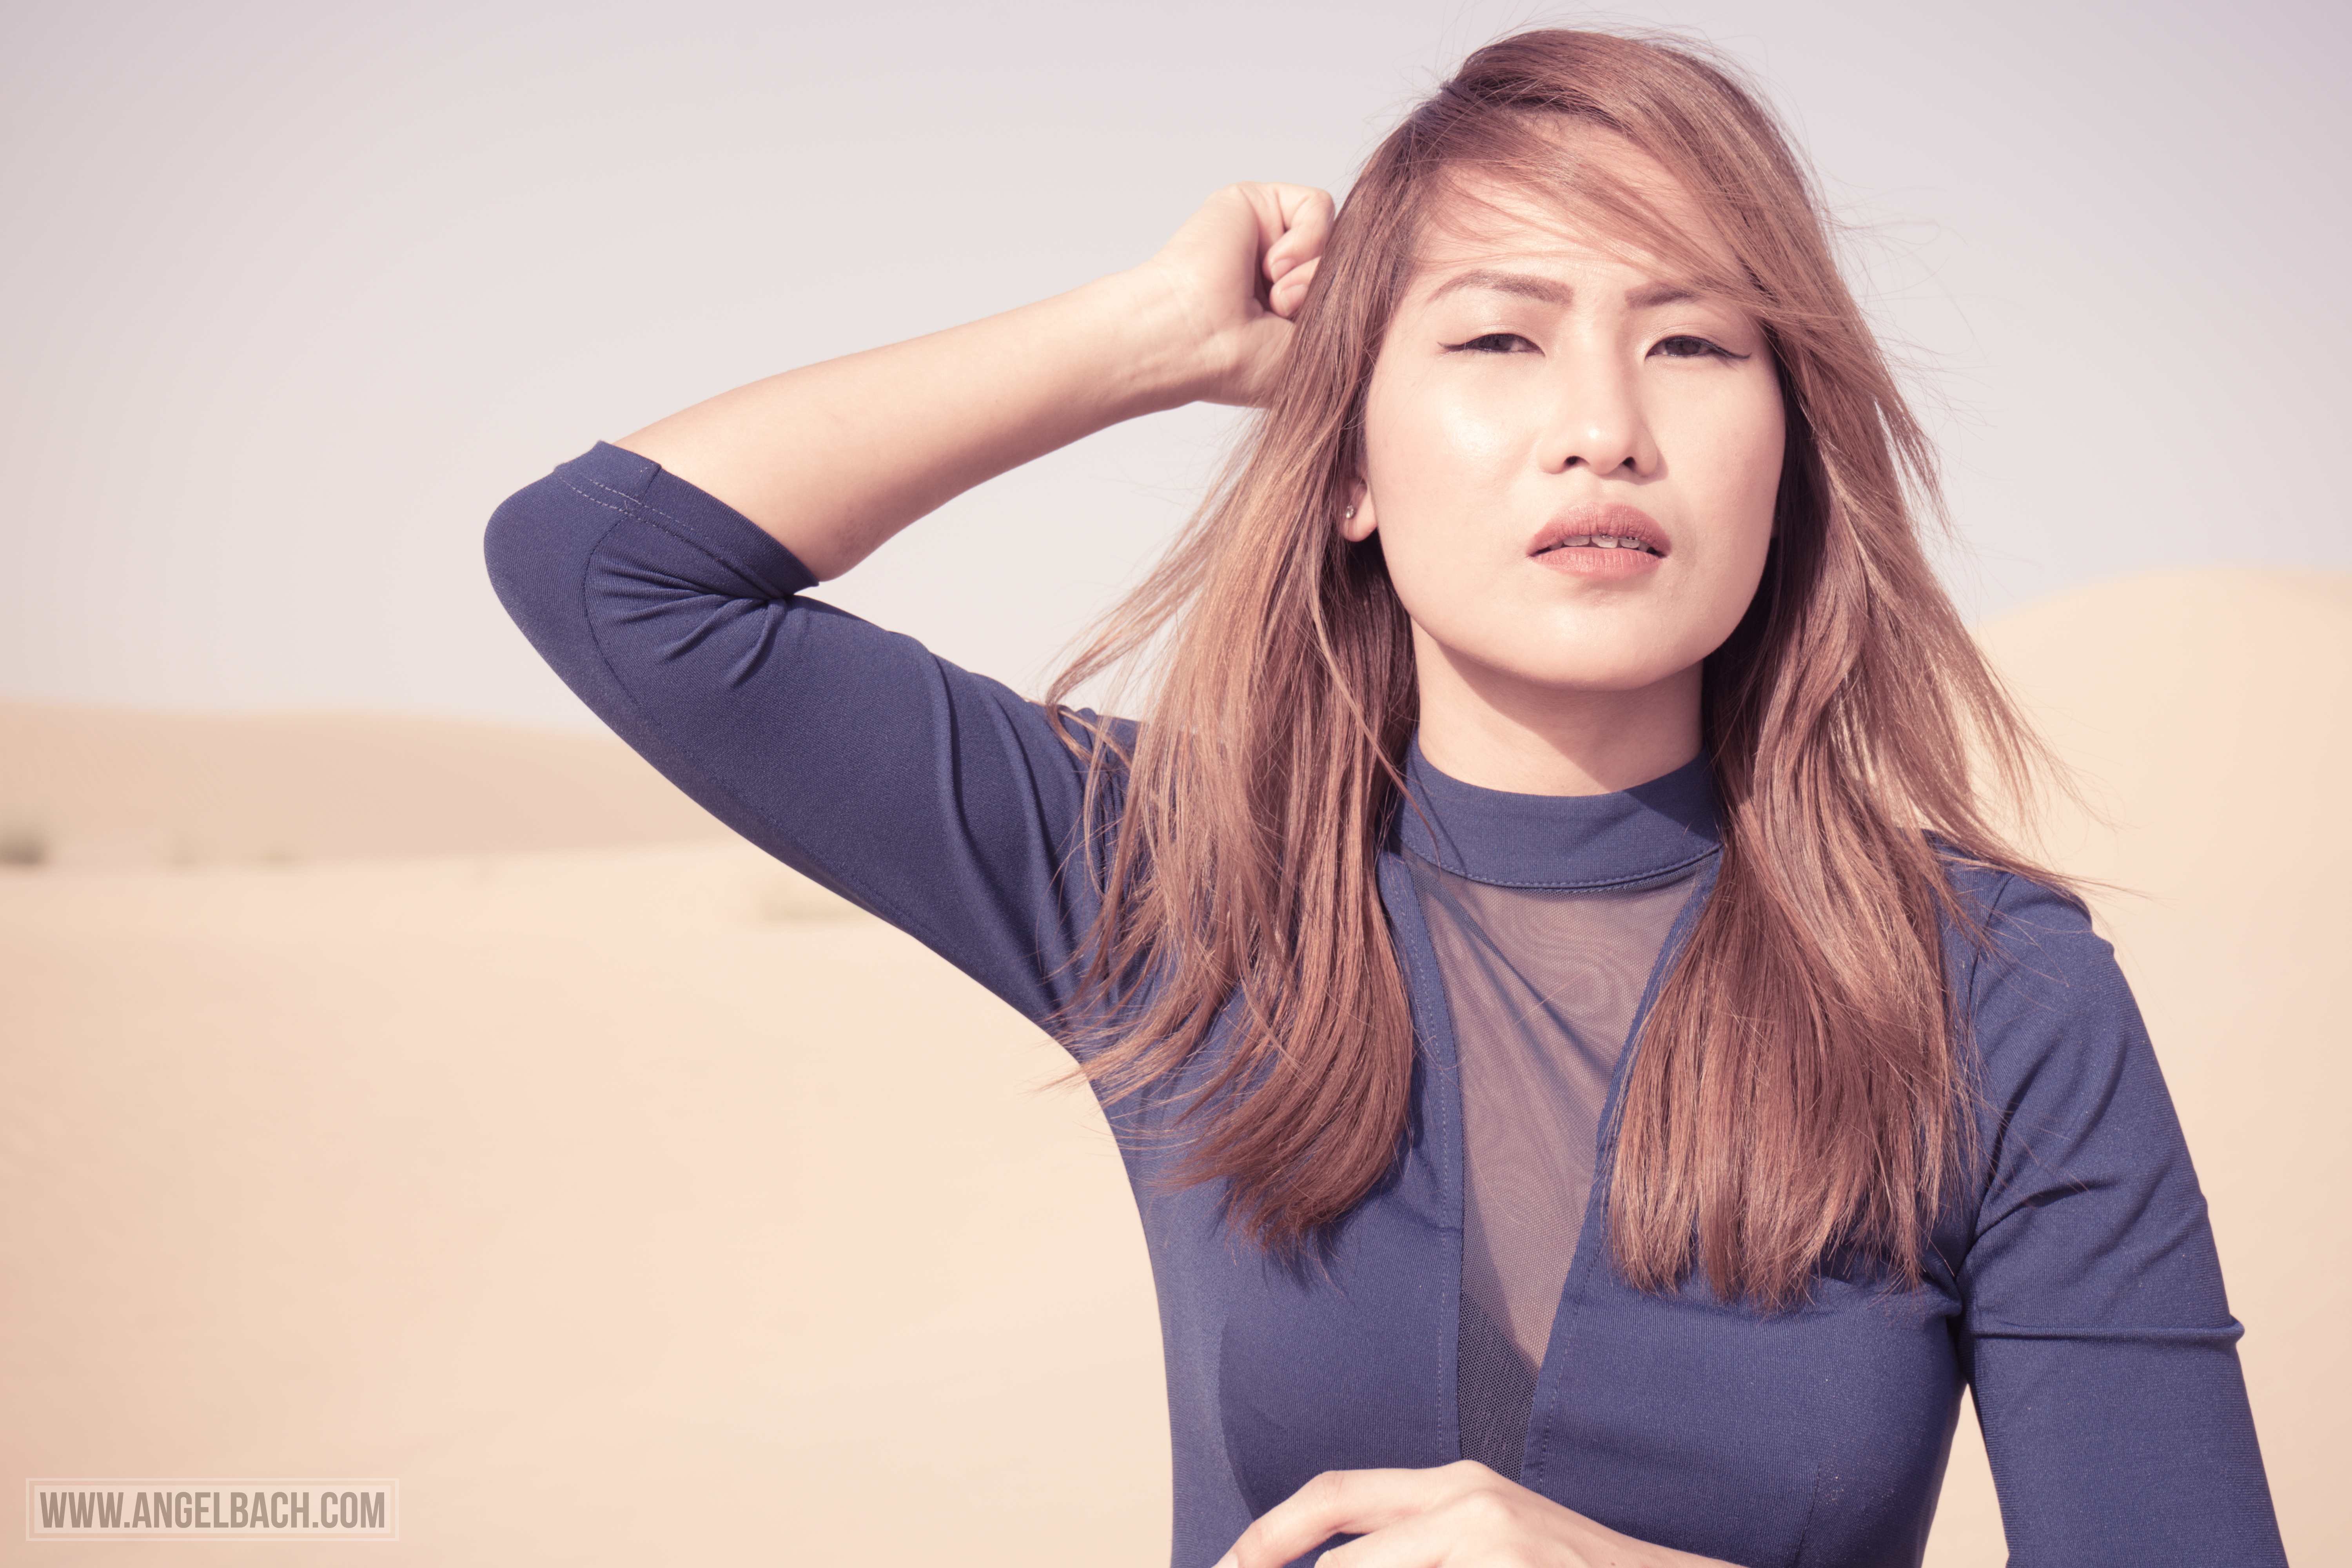 Desert, Dubai, Fashion Photography, Dubai Expat, Portraits, Pinay, Filipina, Muse, Gandang Pinay